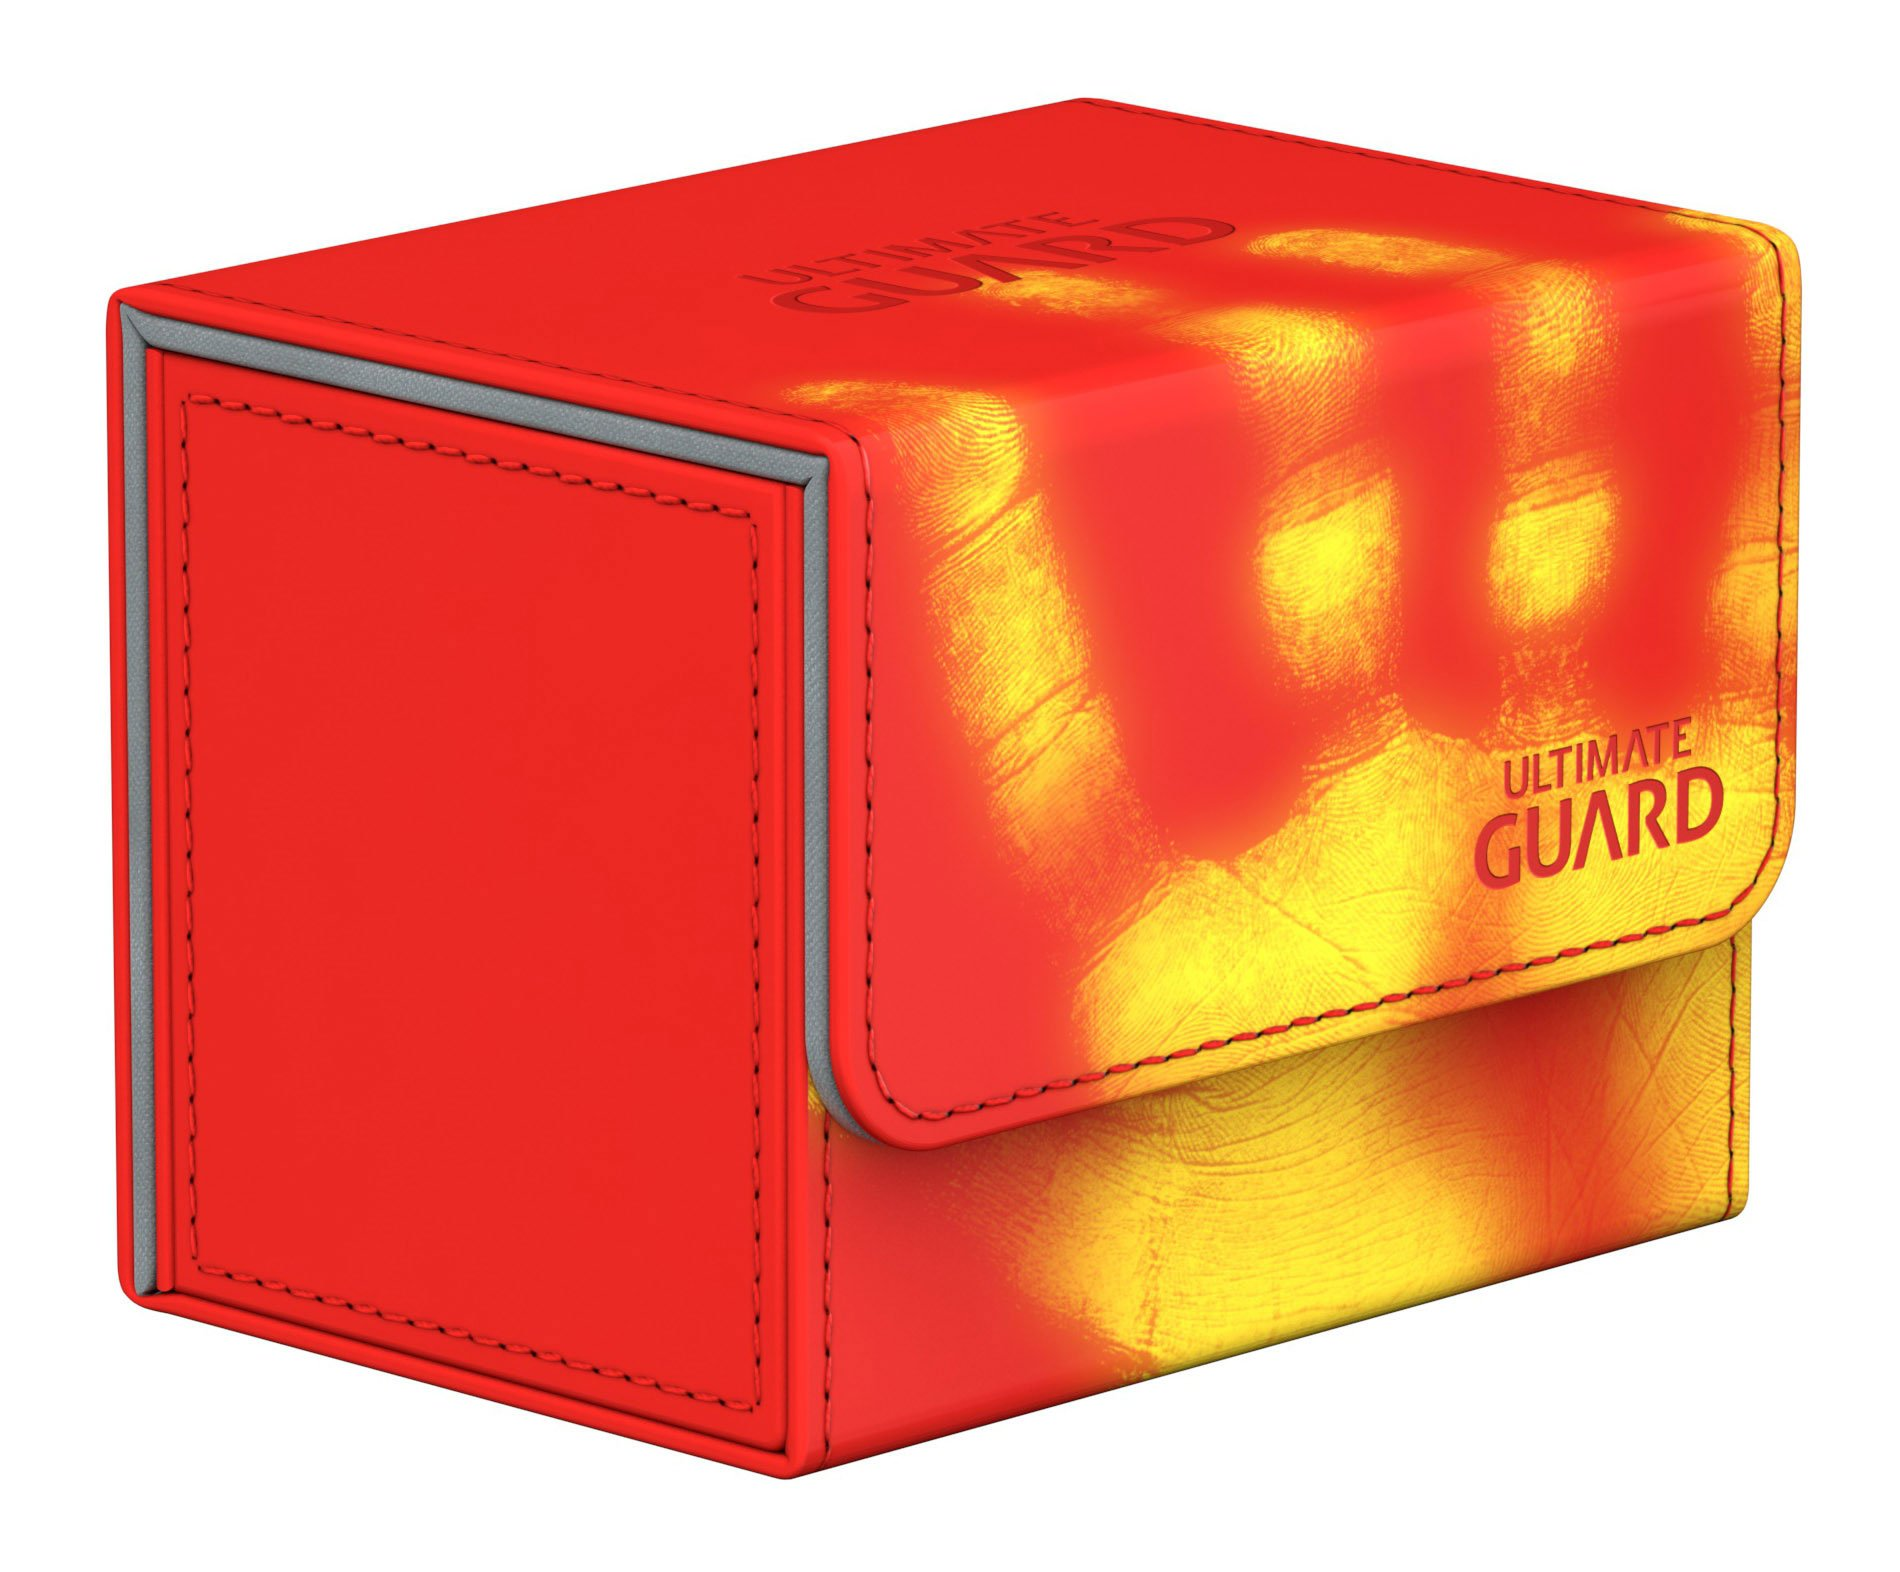 Ultimate Guard Deck Box: Sidewinder 80+ ChromiaSkin Red by Ultimate Guard